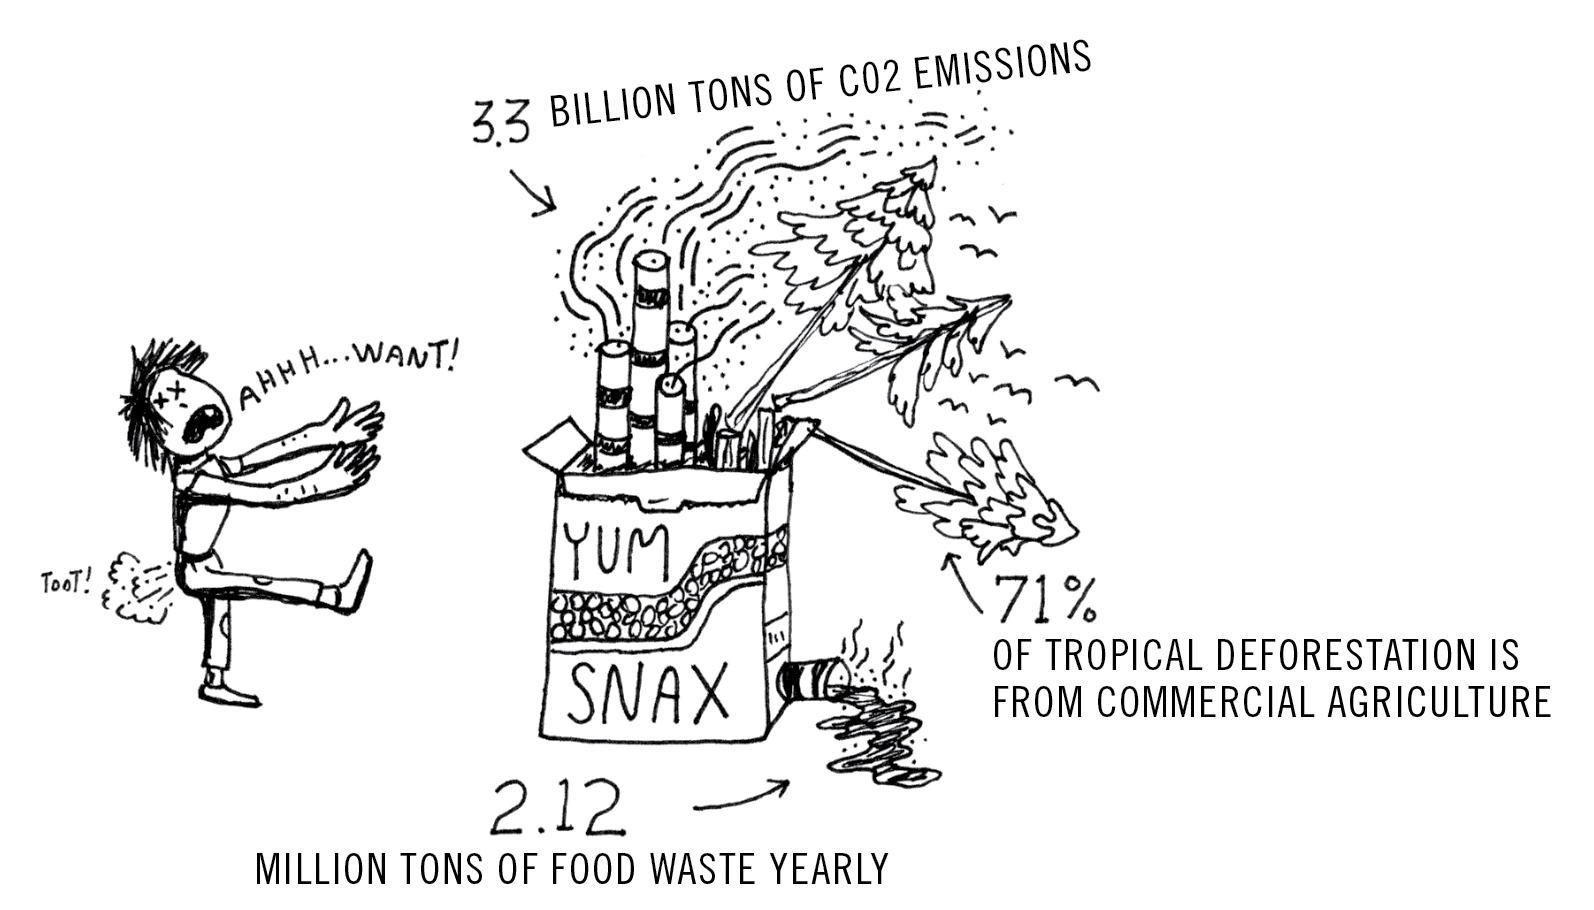 (Food Waste Fact Source: Food and Agriculture Organization of the United Nations,    Food Wastage Footprint on Natural Resources summary.    Palm Oil Fact Source, Rain Forest Action Network, ran.org)